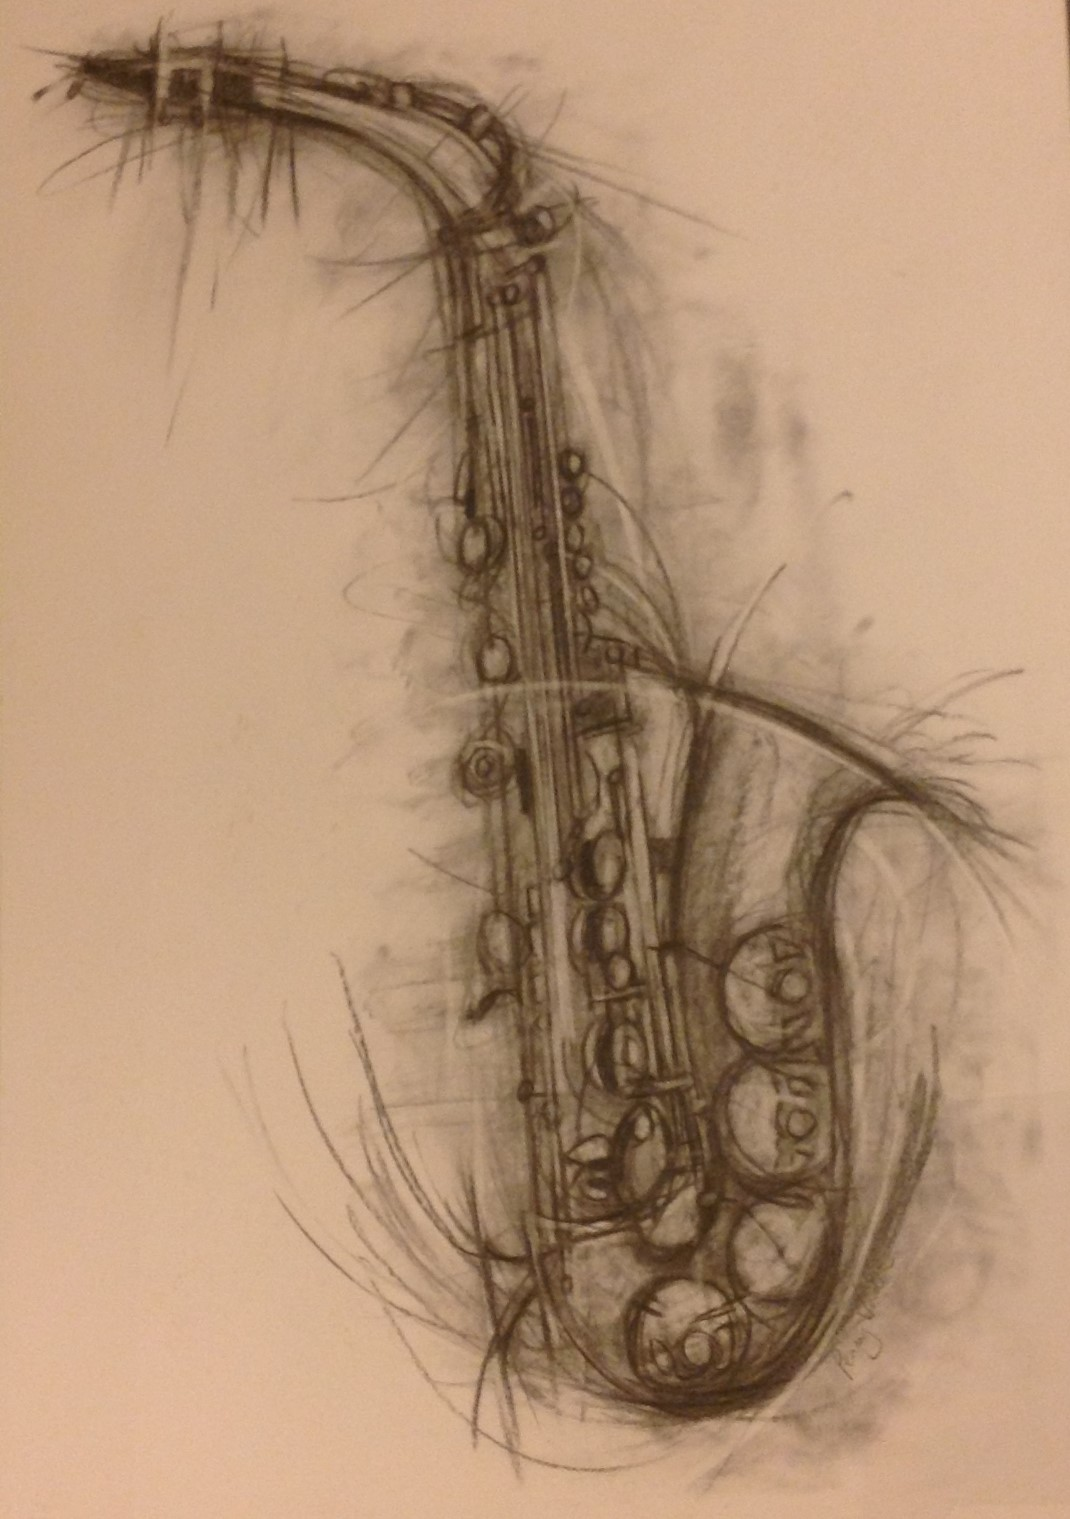 Vibrant saxophone charcoal drawing artwork by Penny Warden - art listed for sale on Artplode